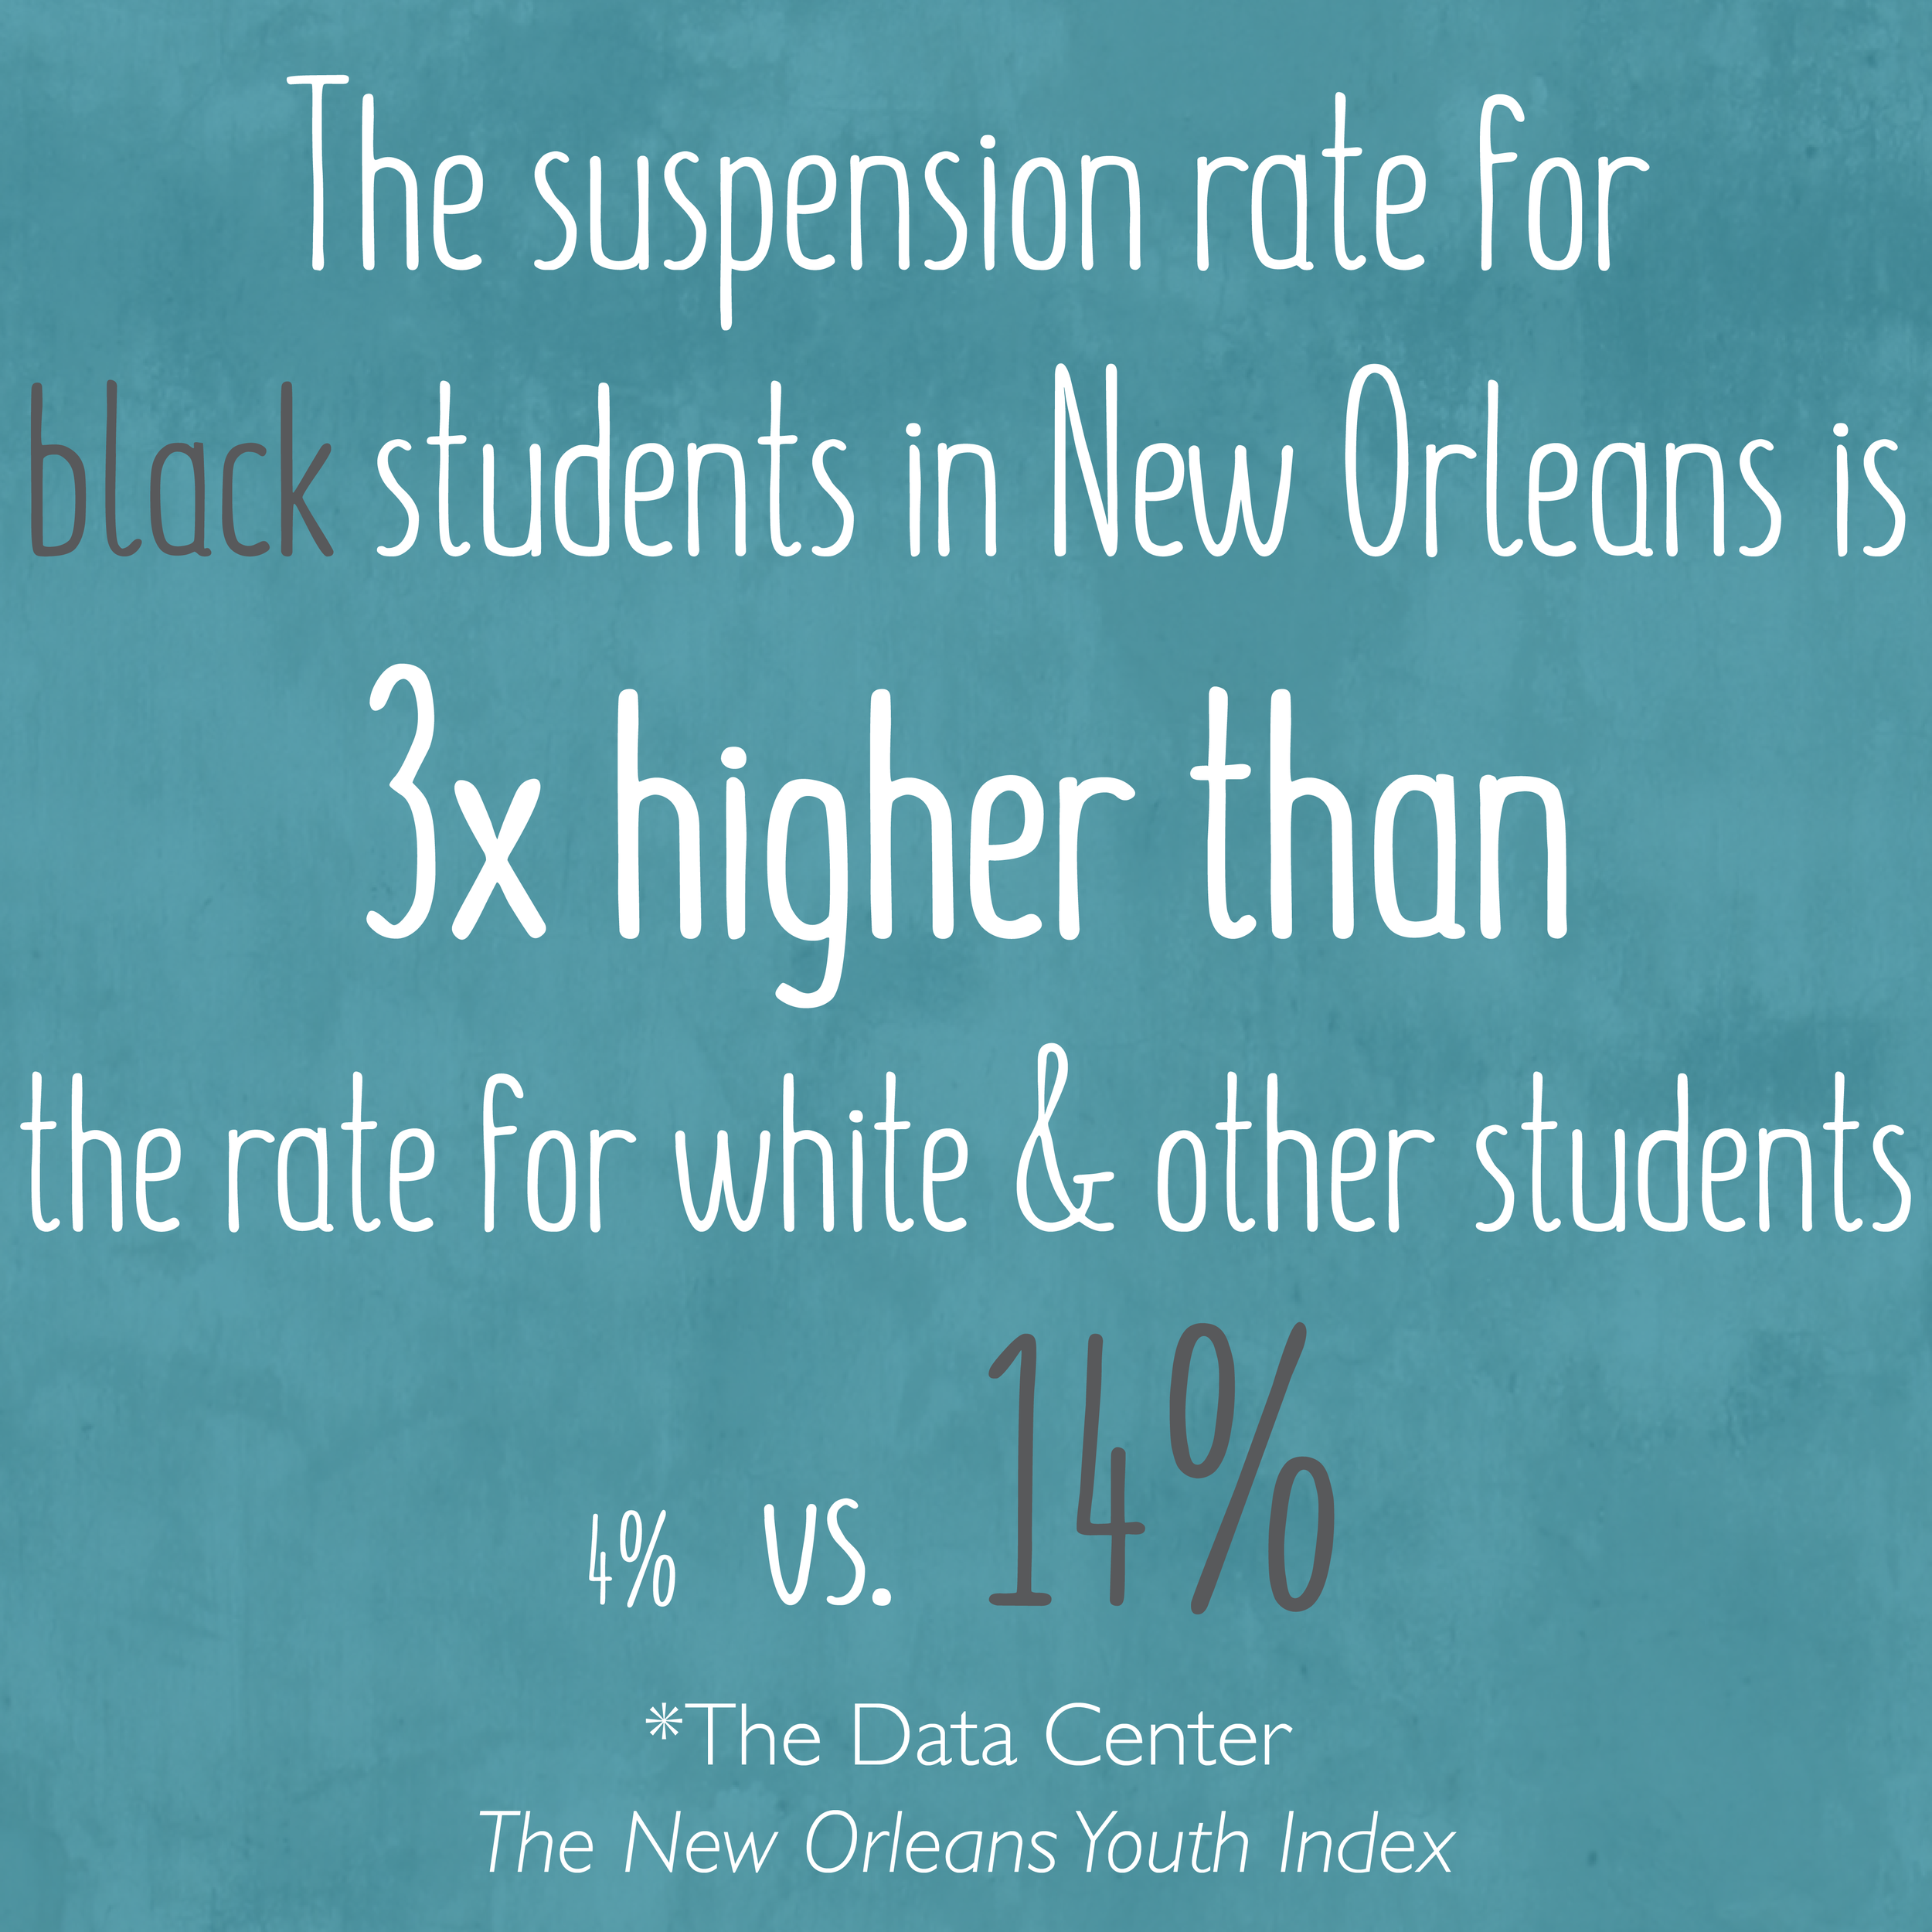 ITN Stats_NOLA suspension rates.png